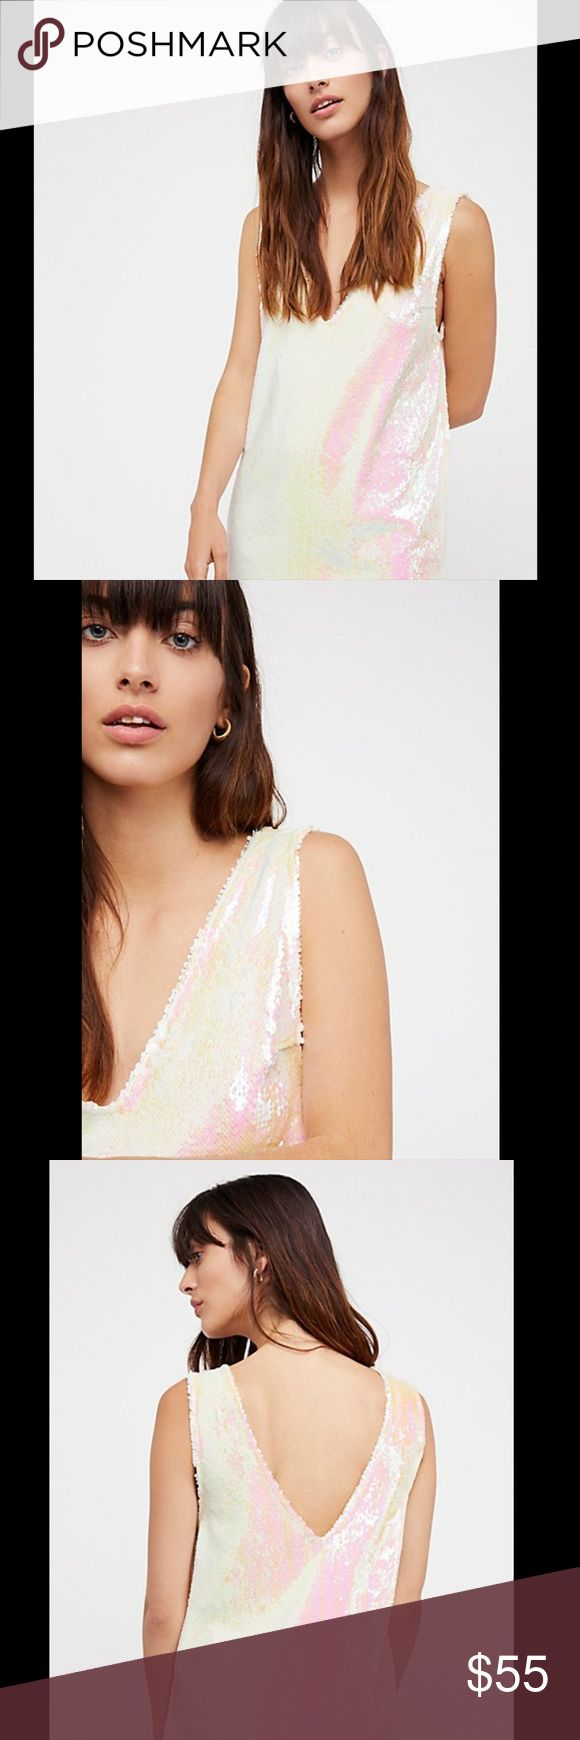 """NWT FREE PEOPLE EMBELLISHED SEQUIN SHIFT SLIP S 100% AUTHENTIC AND IN PRISTINE, BRAND NEW CONDITION WITH TAGS ATTACHED  FREE PEOPLE INTIMATELY EMBELLISHED SLEEVELESS STRETCH SEQUIN SHIFT SLIP PEARL Simple shift slip featuring an ultra glam design with a shimmering sequins allover.  V-neckline Sleeveless Rounded hem 95%Rayon/5%spandex hand wash cold Fit: this style fits true to size. COLOR : PEARL SIZE : S BUST : 19""""APPROX. LENGTH : 31""""APPROX. STYLE : 42120014 ORIGINAL PRICE : $98.00…"""